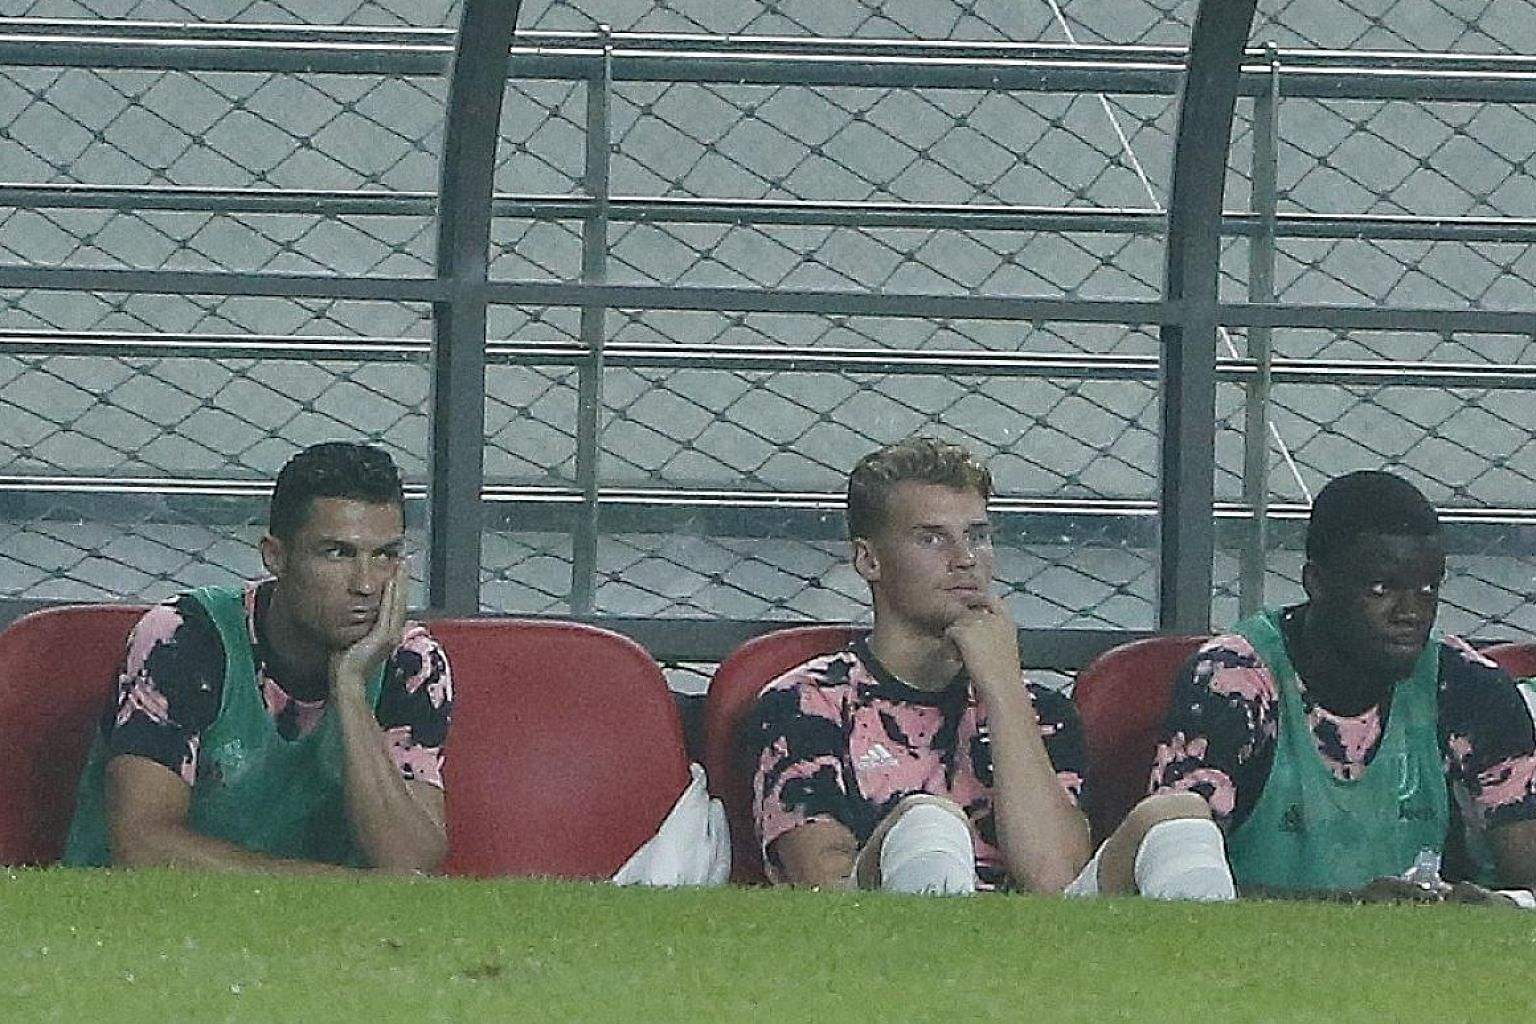 Juventus' Cristiano Ronaldo (far left) on the bench during the pre-season friendly match against a K-League all-star team at the Seoul World Cup Stadium in Seoul last week. The club have said that he did not feature owing to medical reasons, having p